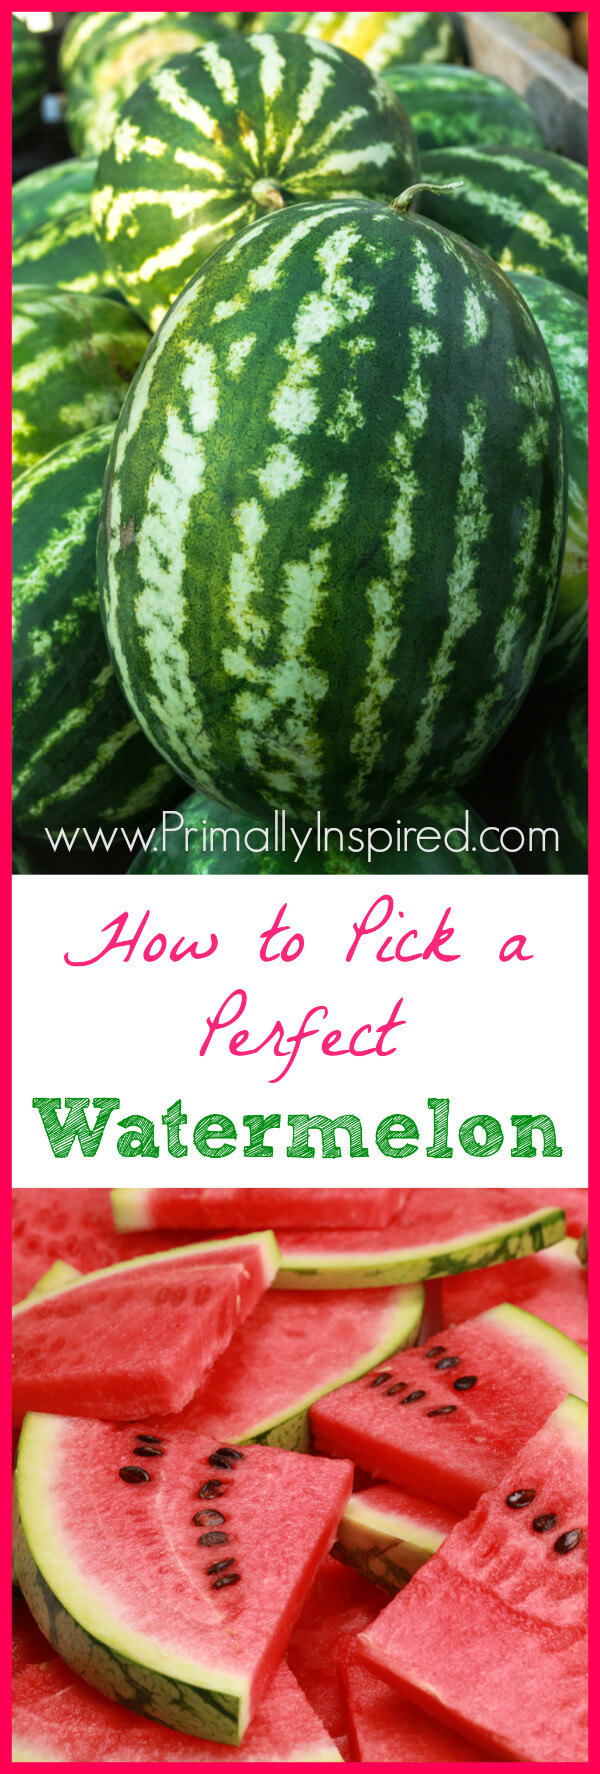 How to Pick a Perfect Watermelon by Primally Inspired